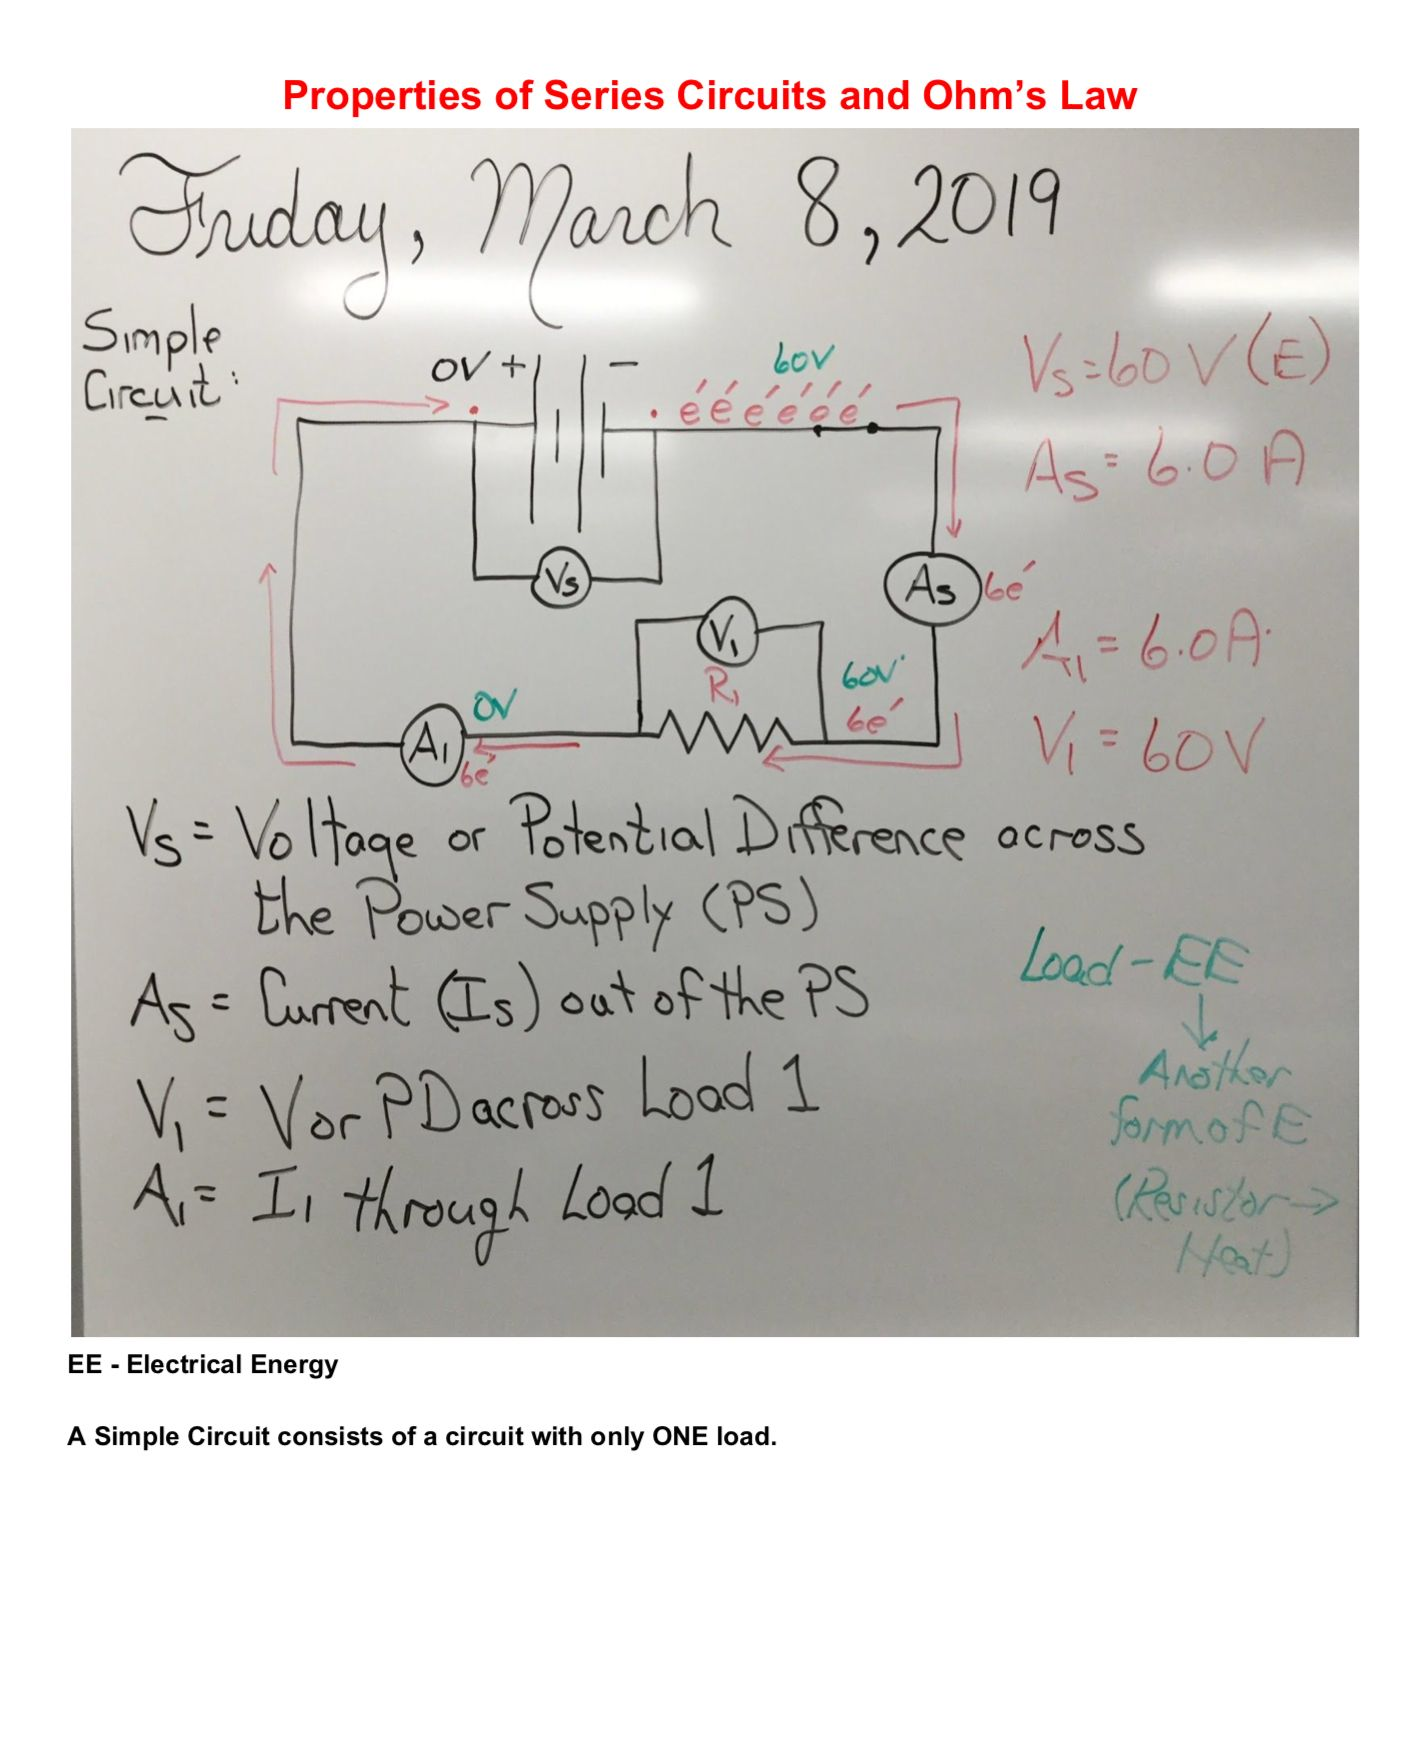 Properties Of Series Circuits And Ohm S Law Note Friday March 8 2019 Ohms Law Law Notes Ohms